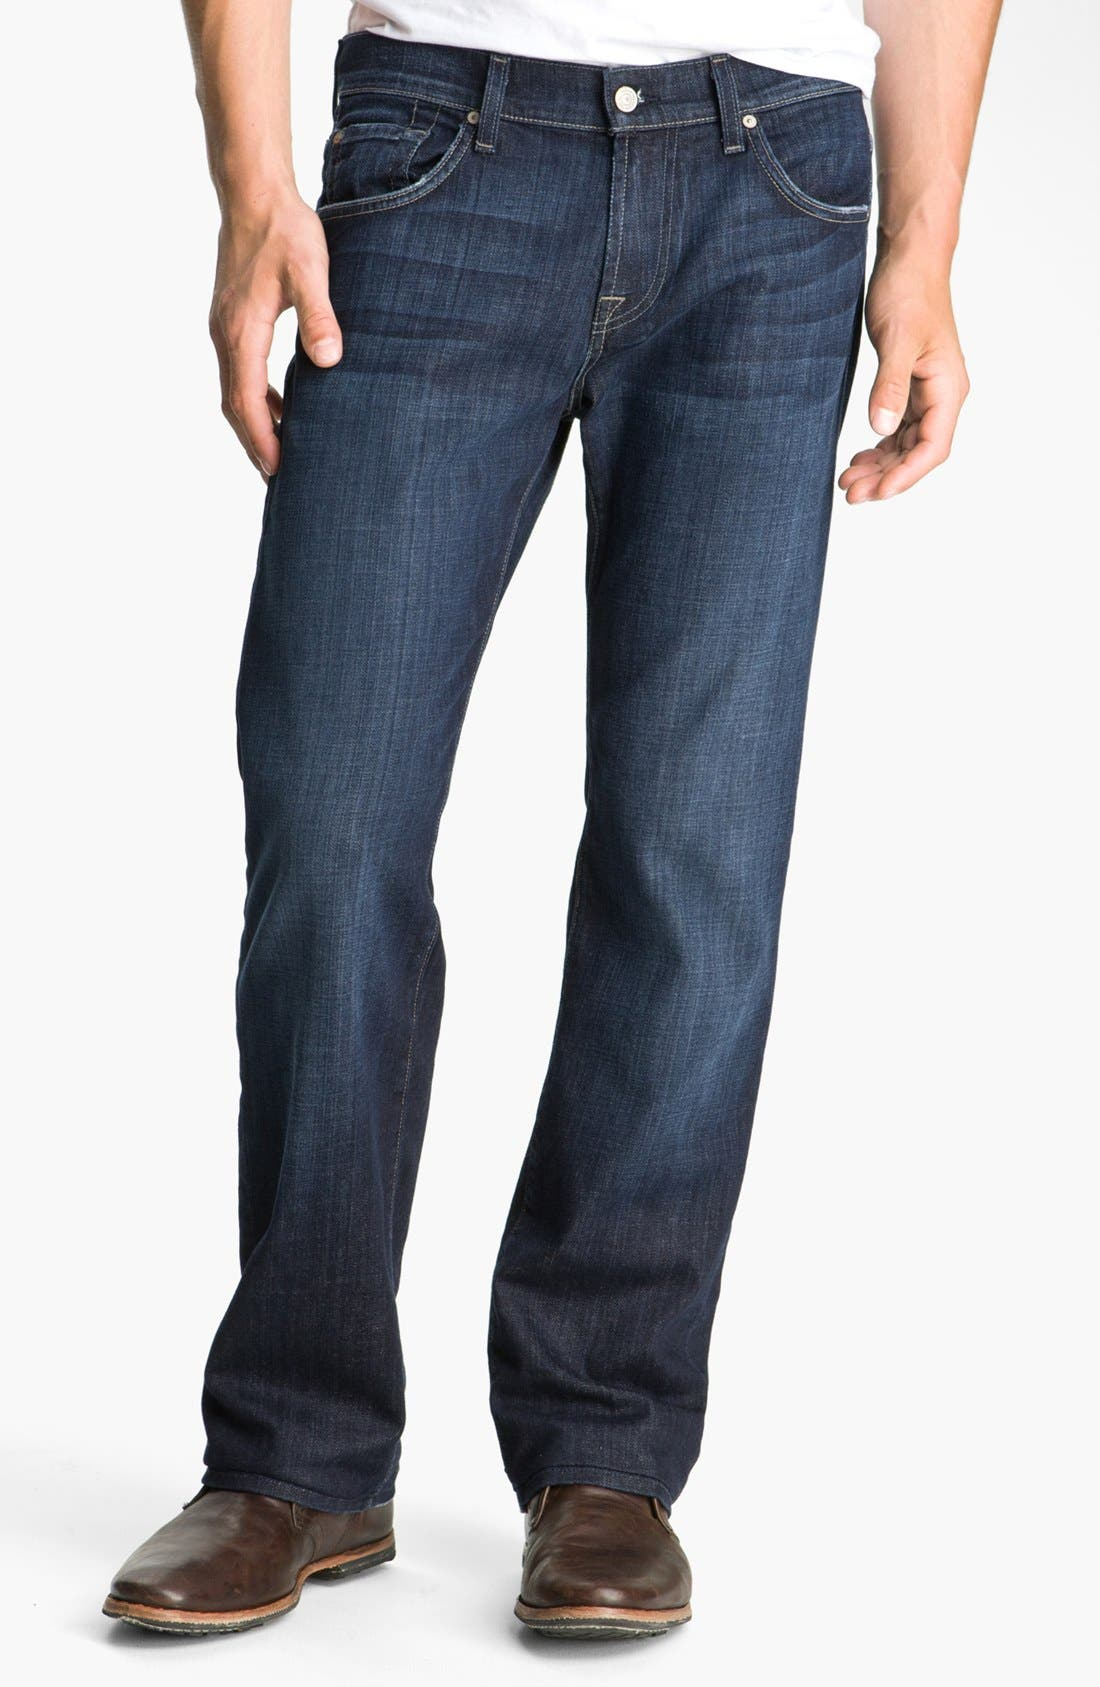 Main Image - 7 For All Mankind® 'Austyn' Relaxed Straight Leg Jeans (Los Angeles Dark) (Tall)